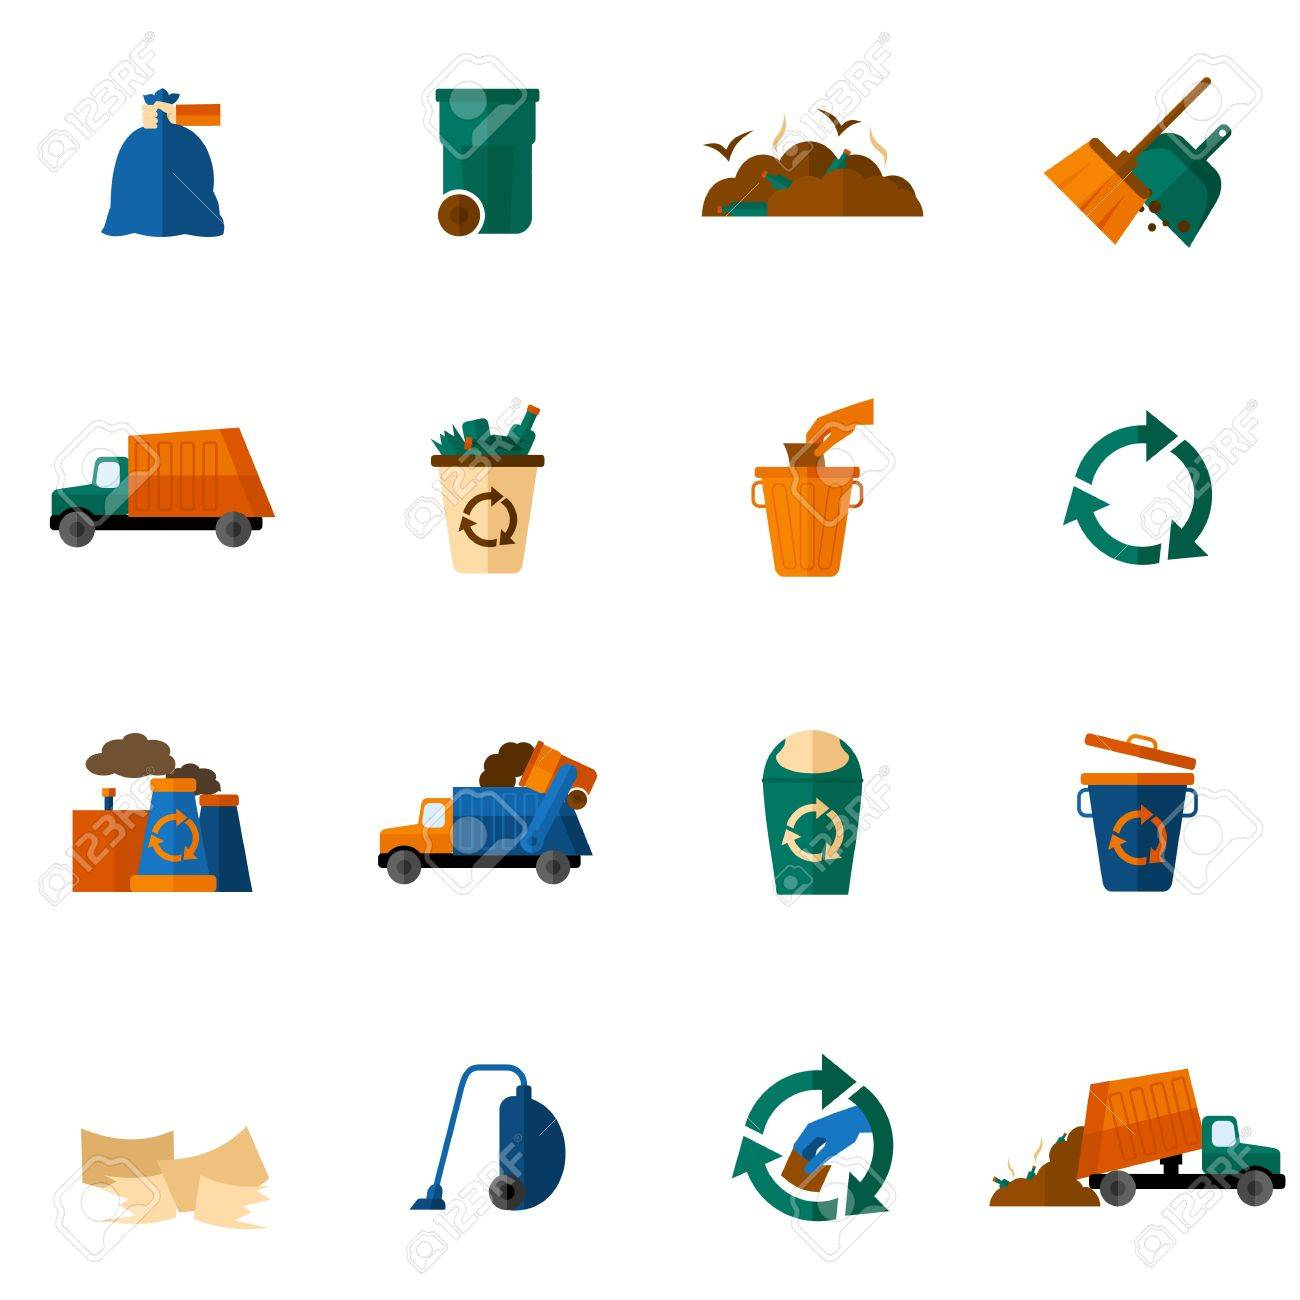 Garbage icons flat set with trash bin cleaning bulldozer isolated vector illustration - 36520238